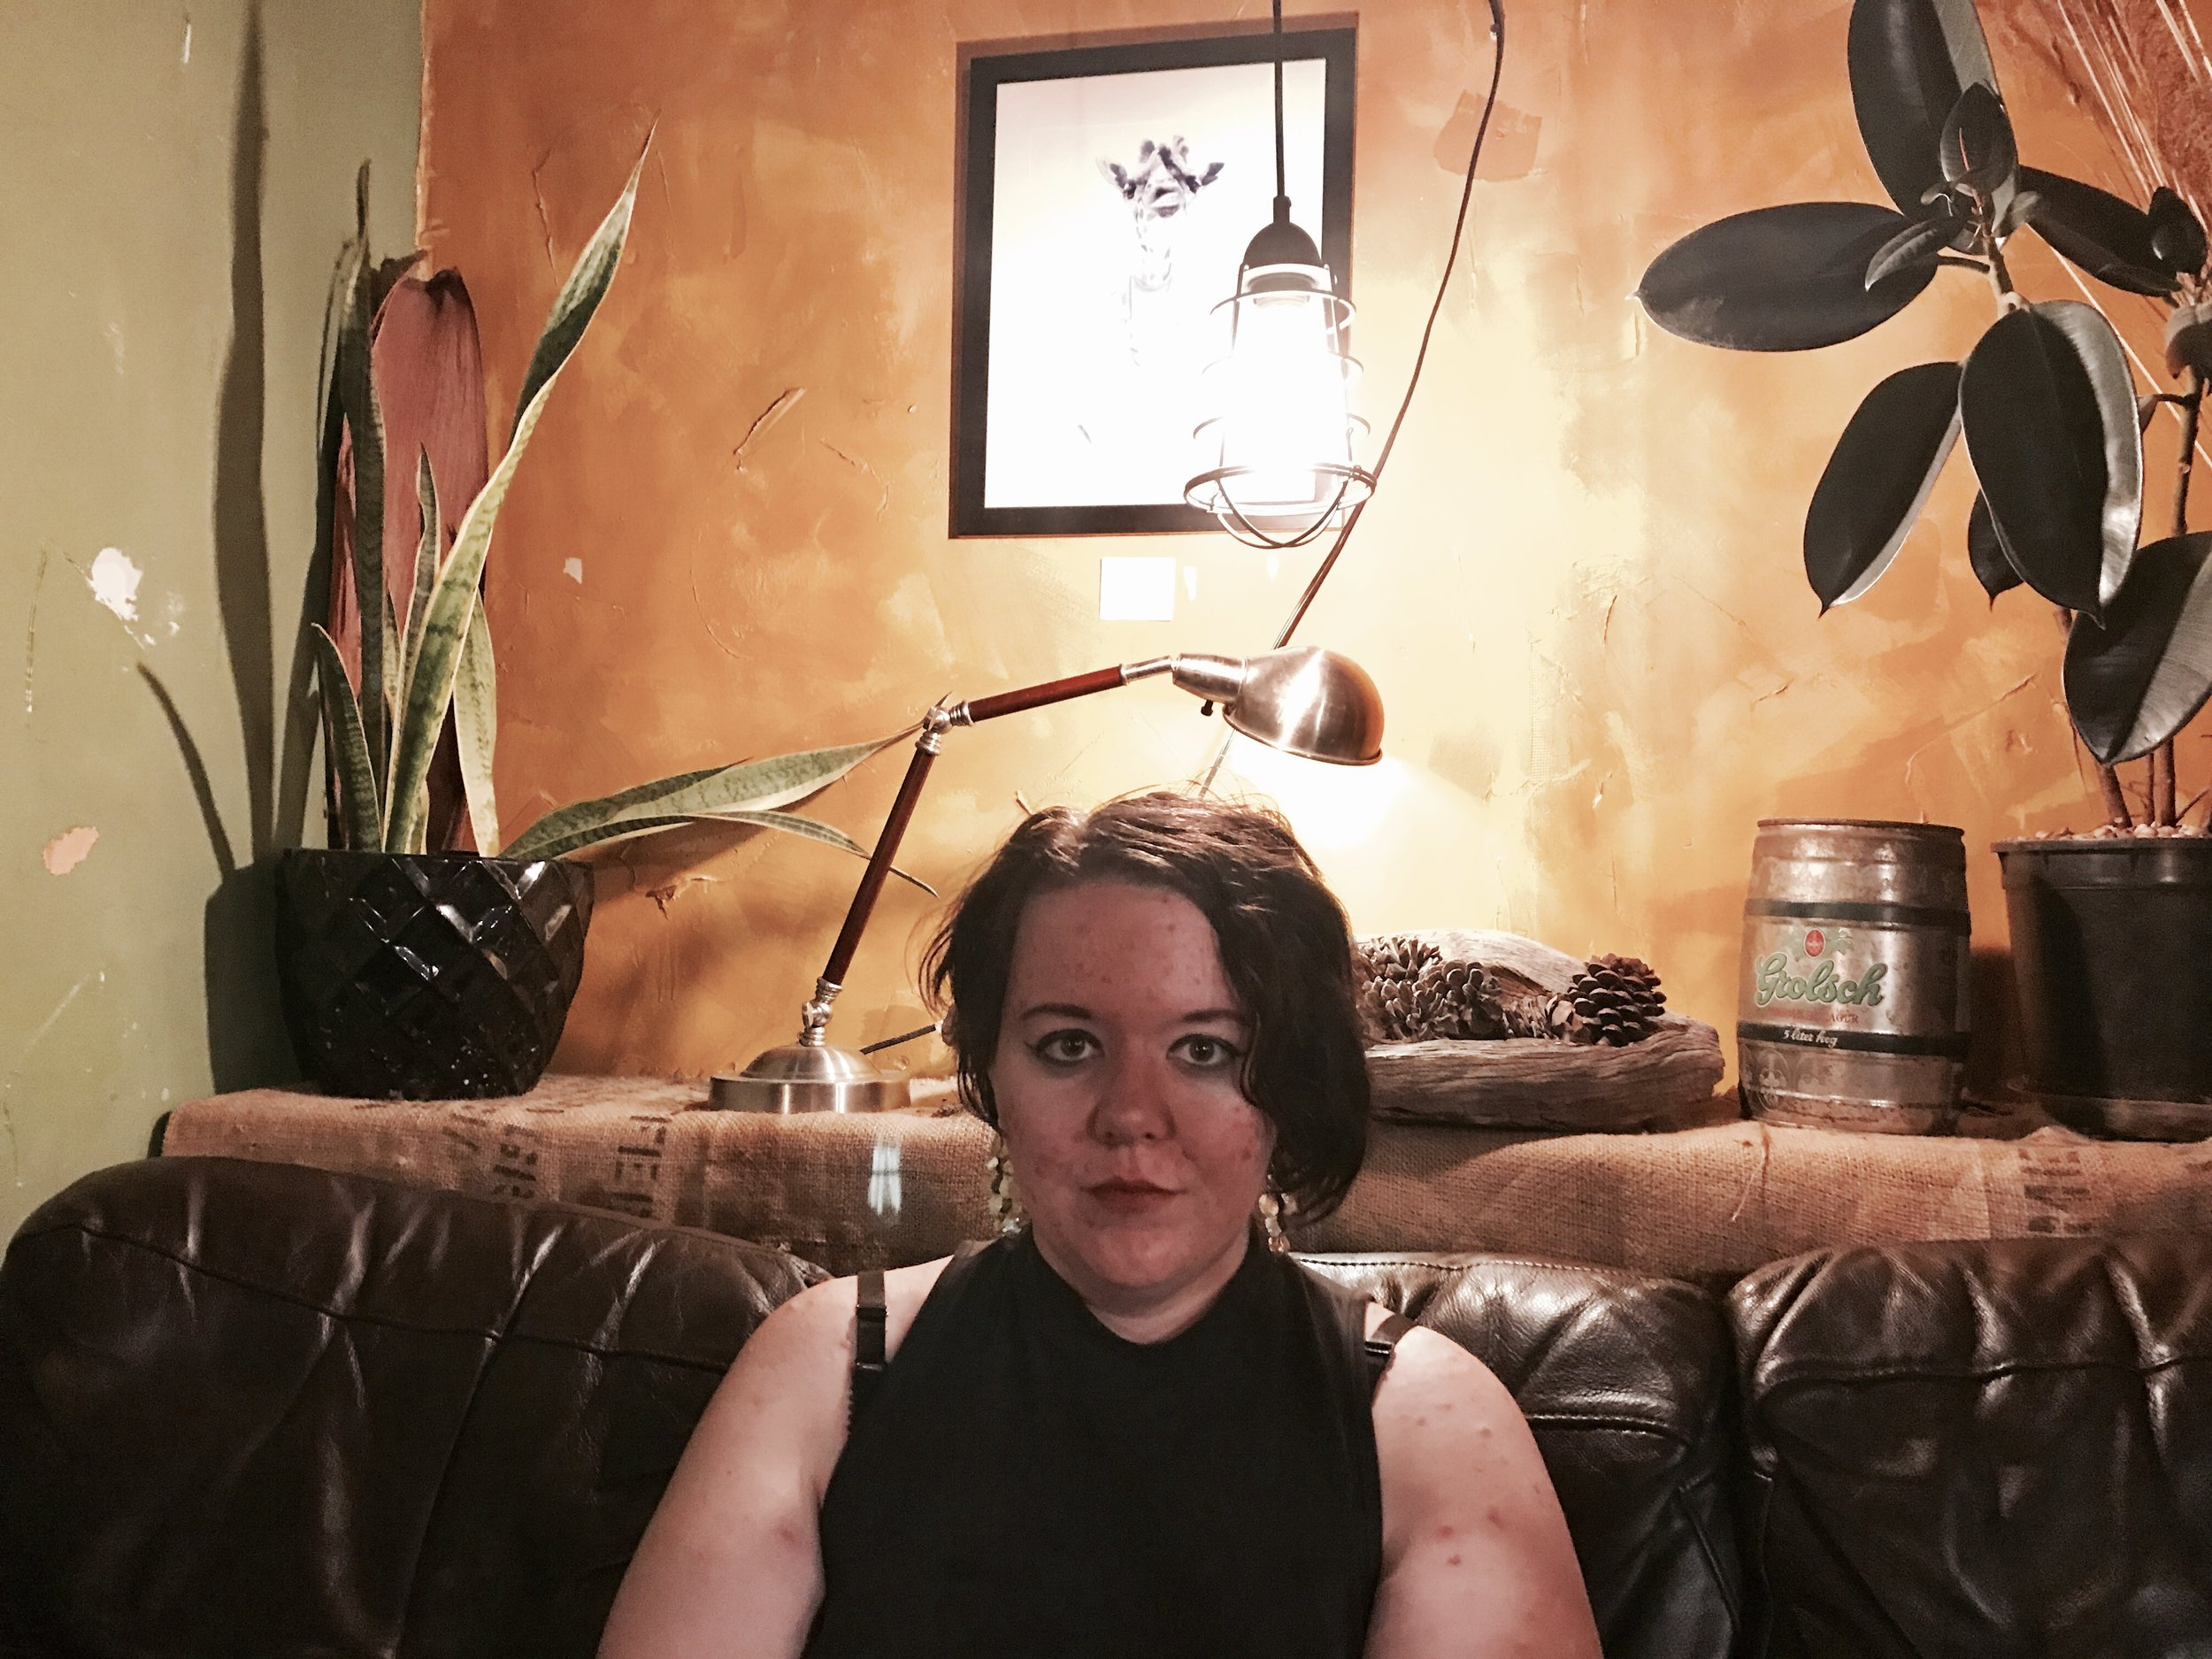 "A photo of a person from the chest-up, looking directly into the camera, sitting on a leather couch. The background behind her is a dark orange and an olive green. On the wall behind her there's a picture of a giraffe. There are many inanimate objects on the mantle behind her and the couch: two plants, two lamps, a bowl full of pinecones, and a small barrel that says ""Golsch""."